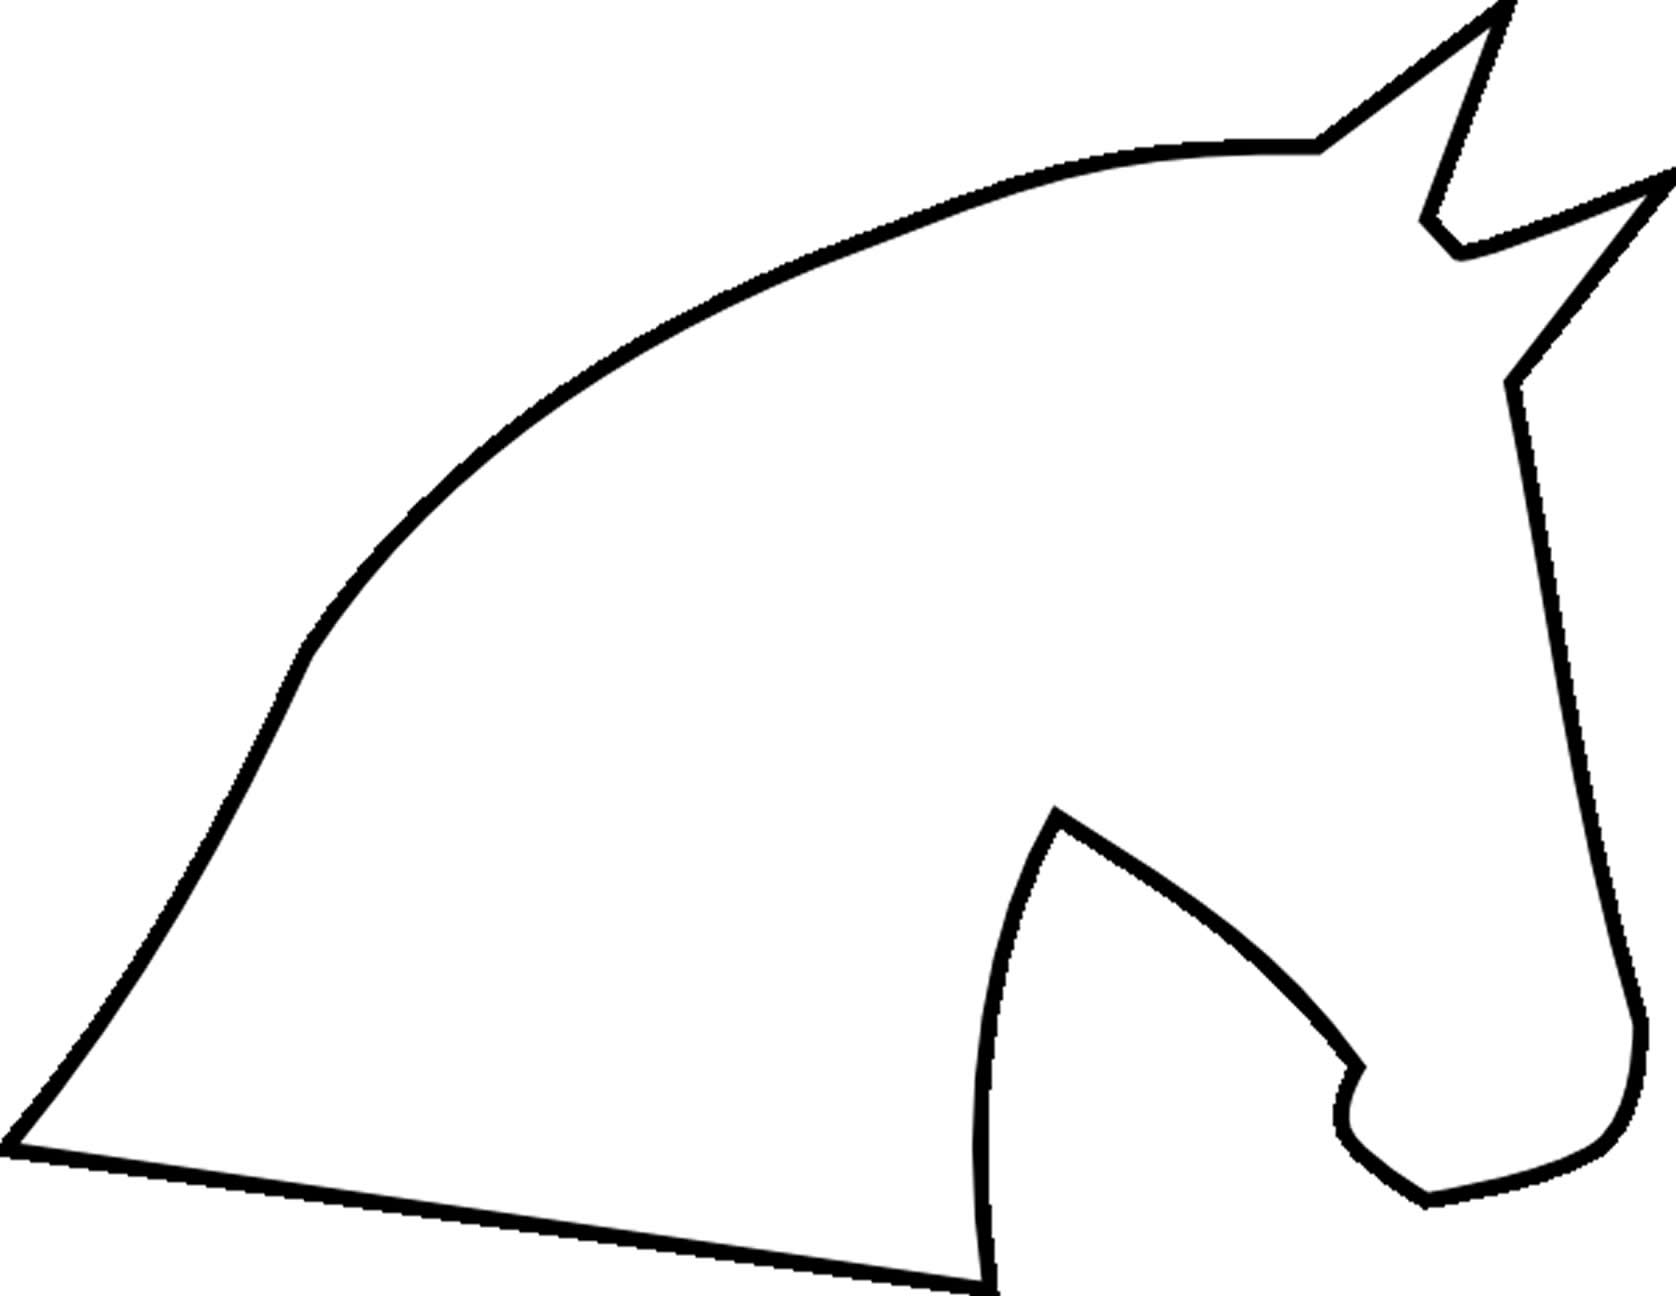 Horse drawing easy at getdrawings free for personal use horse 1676x1296 horse clipart easy to draw spiritdancerdesigns Gallery